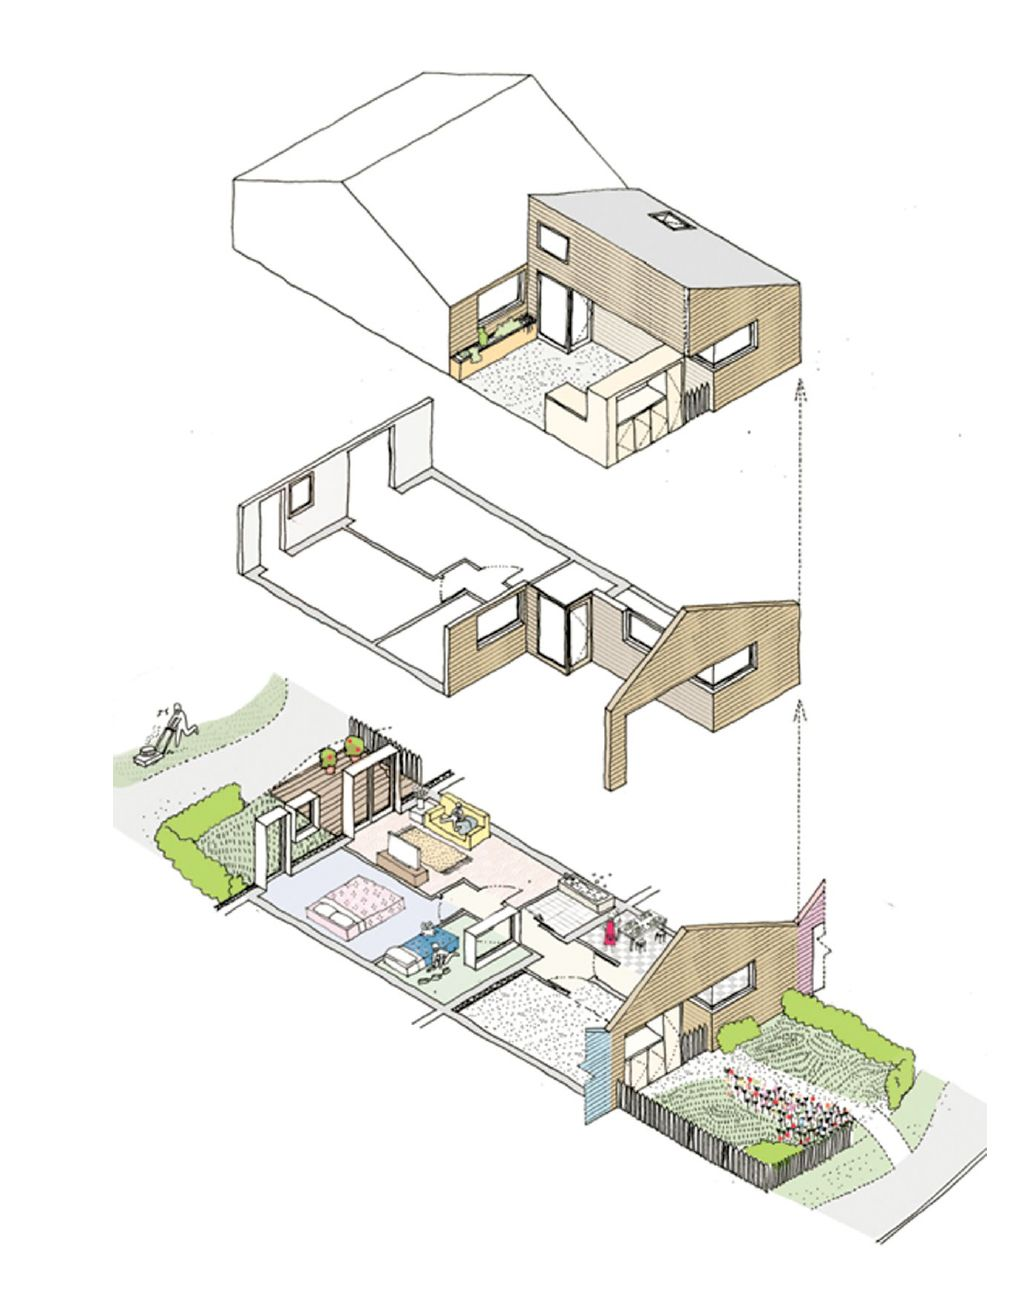 Mmc Based Bungalow Exploded Axon Architectural Drawings Diagram Pinterest Architecture Concept Presentation Board